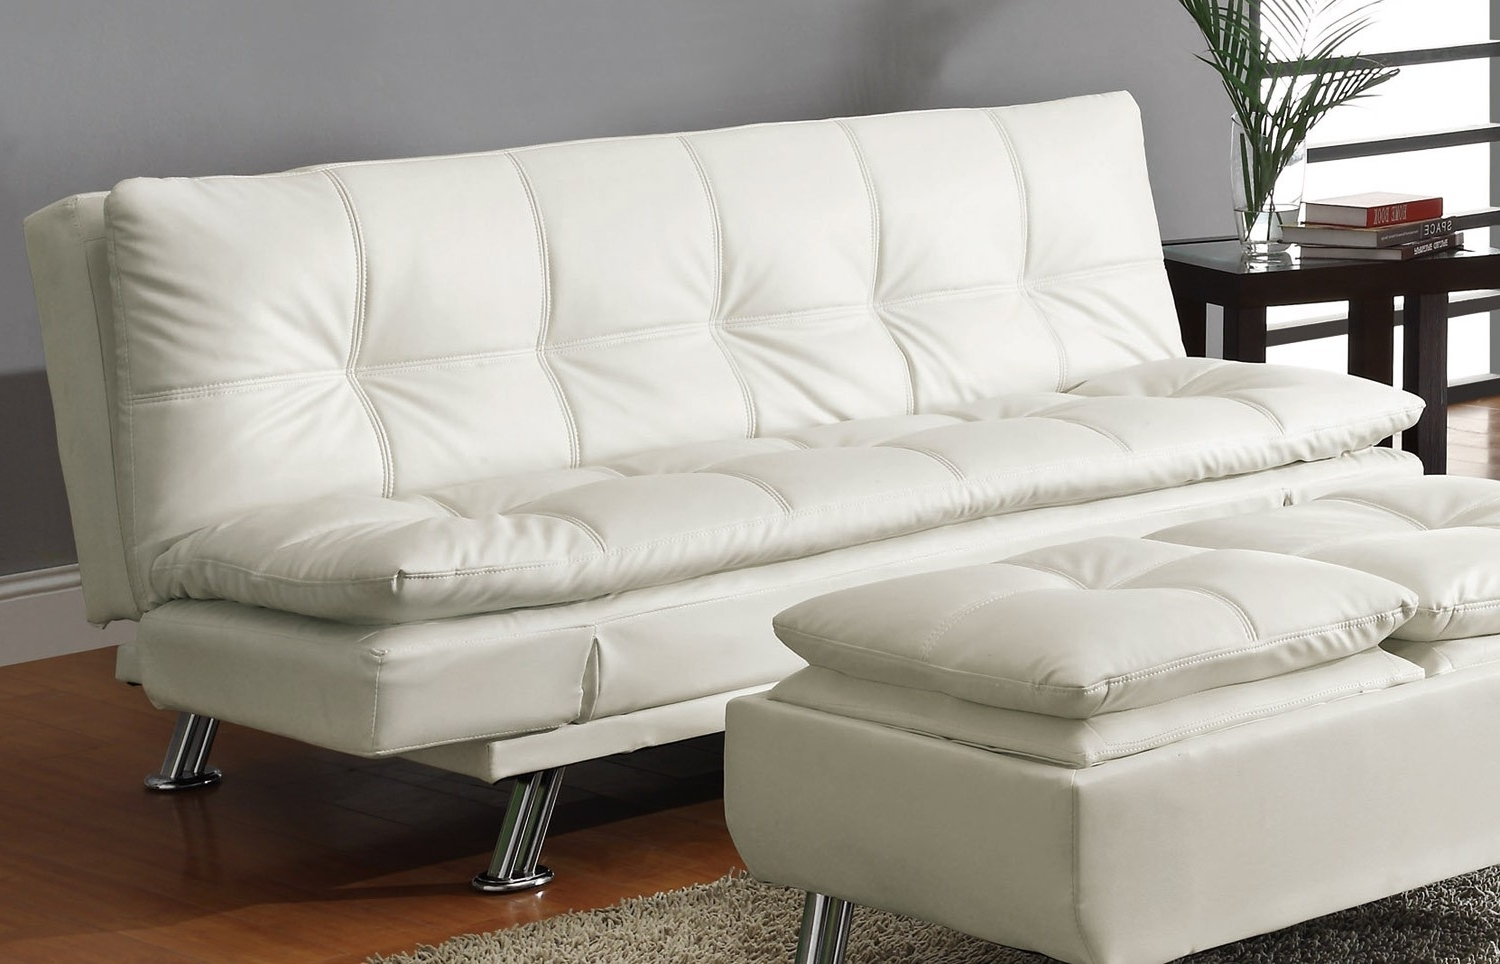 2018 Furniture: Beautiful Living Room Design Ideas With White Leather Within Comfortable Sofas And Chairs (View 3 of 20)